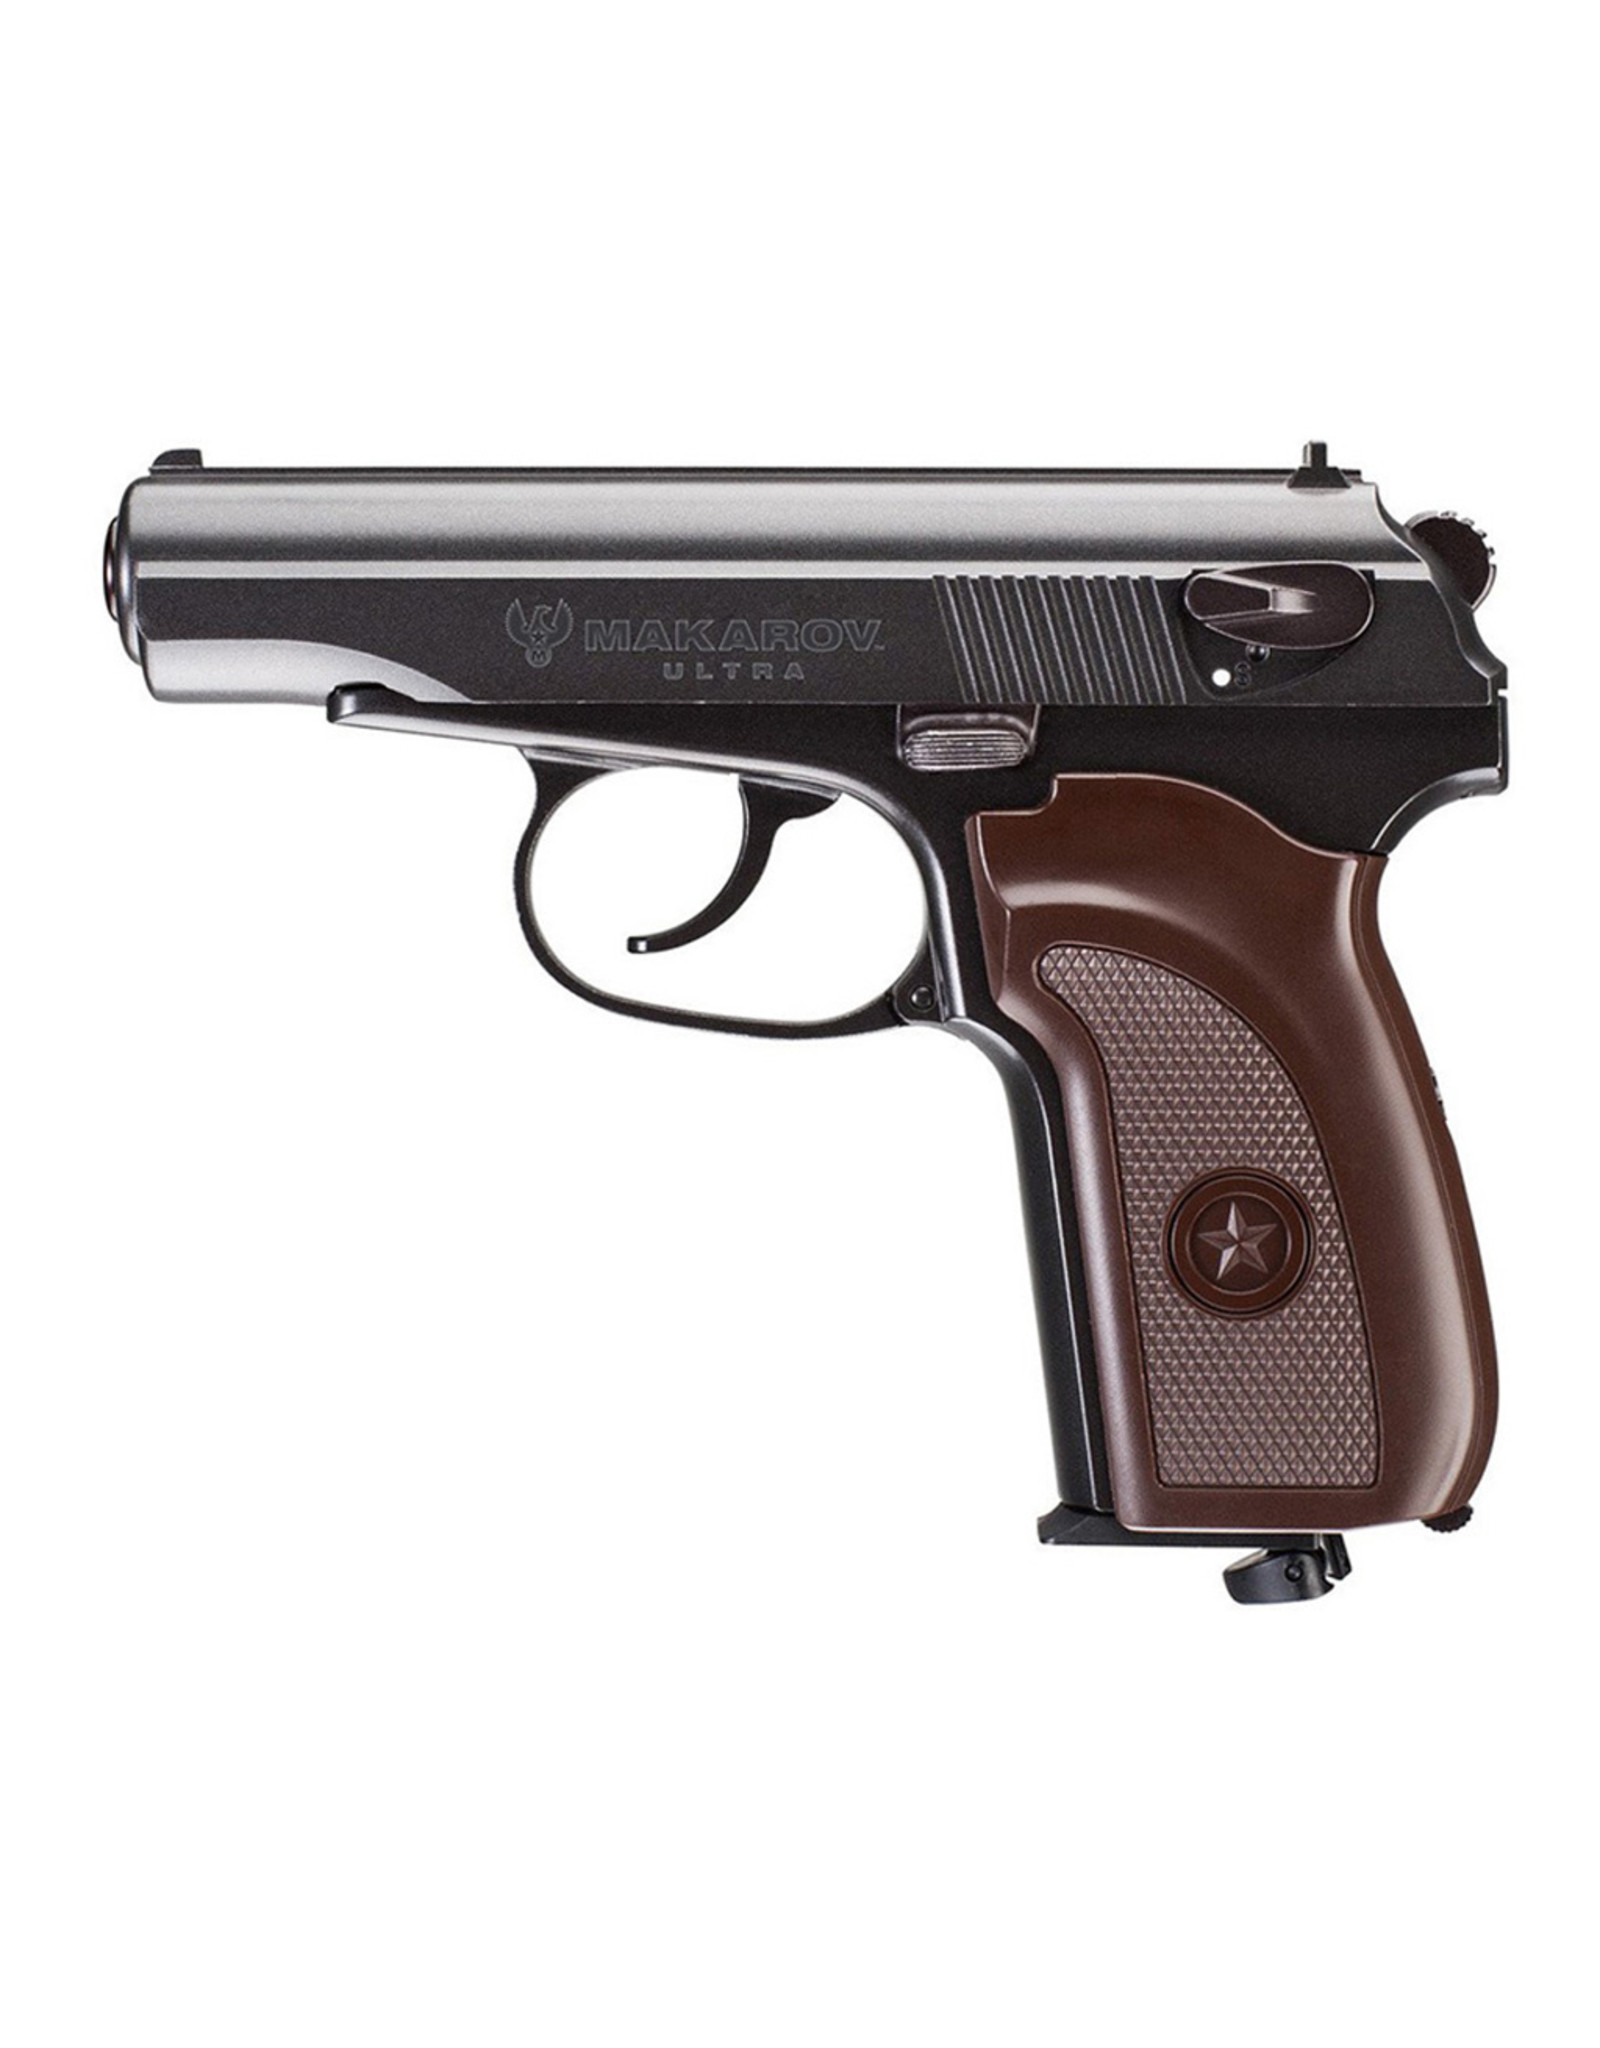 UMAREX LEGENDS MAKAROV ULTRA BLOWBACK BB AIR PISTOL